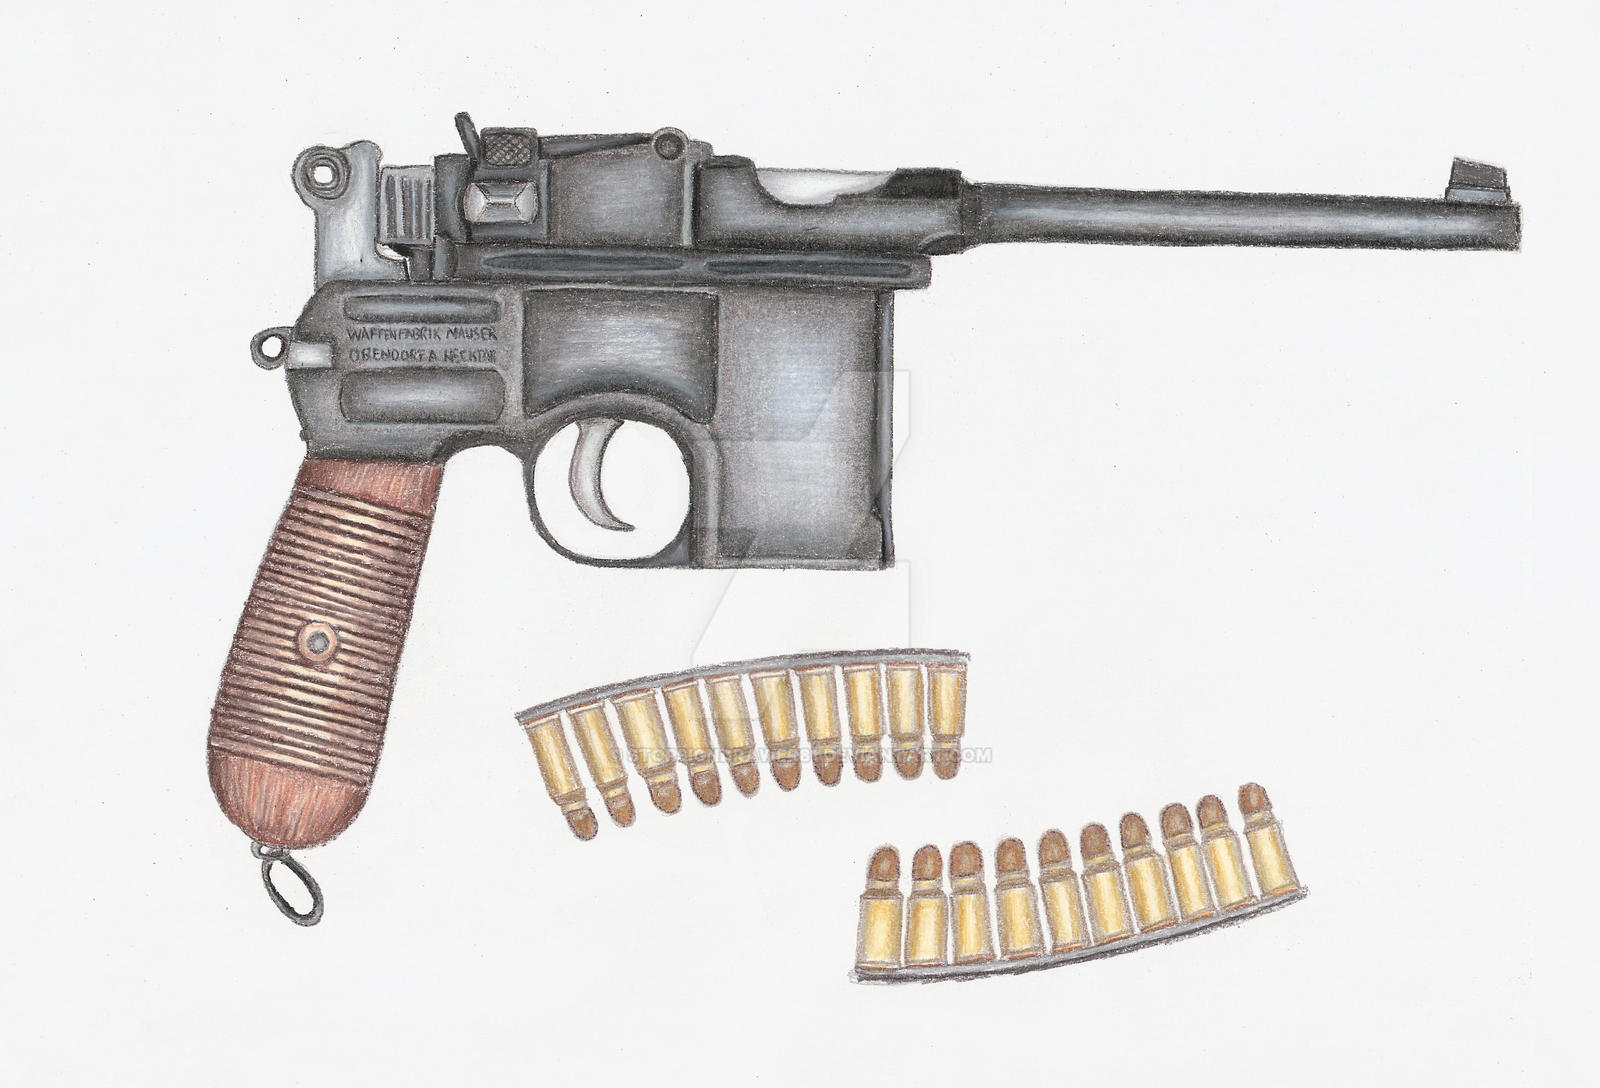 7.63mm Mauser C96 Broomhandle by stopsigndrawer81